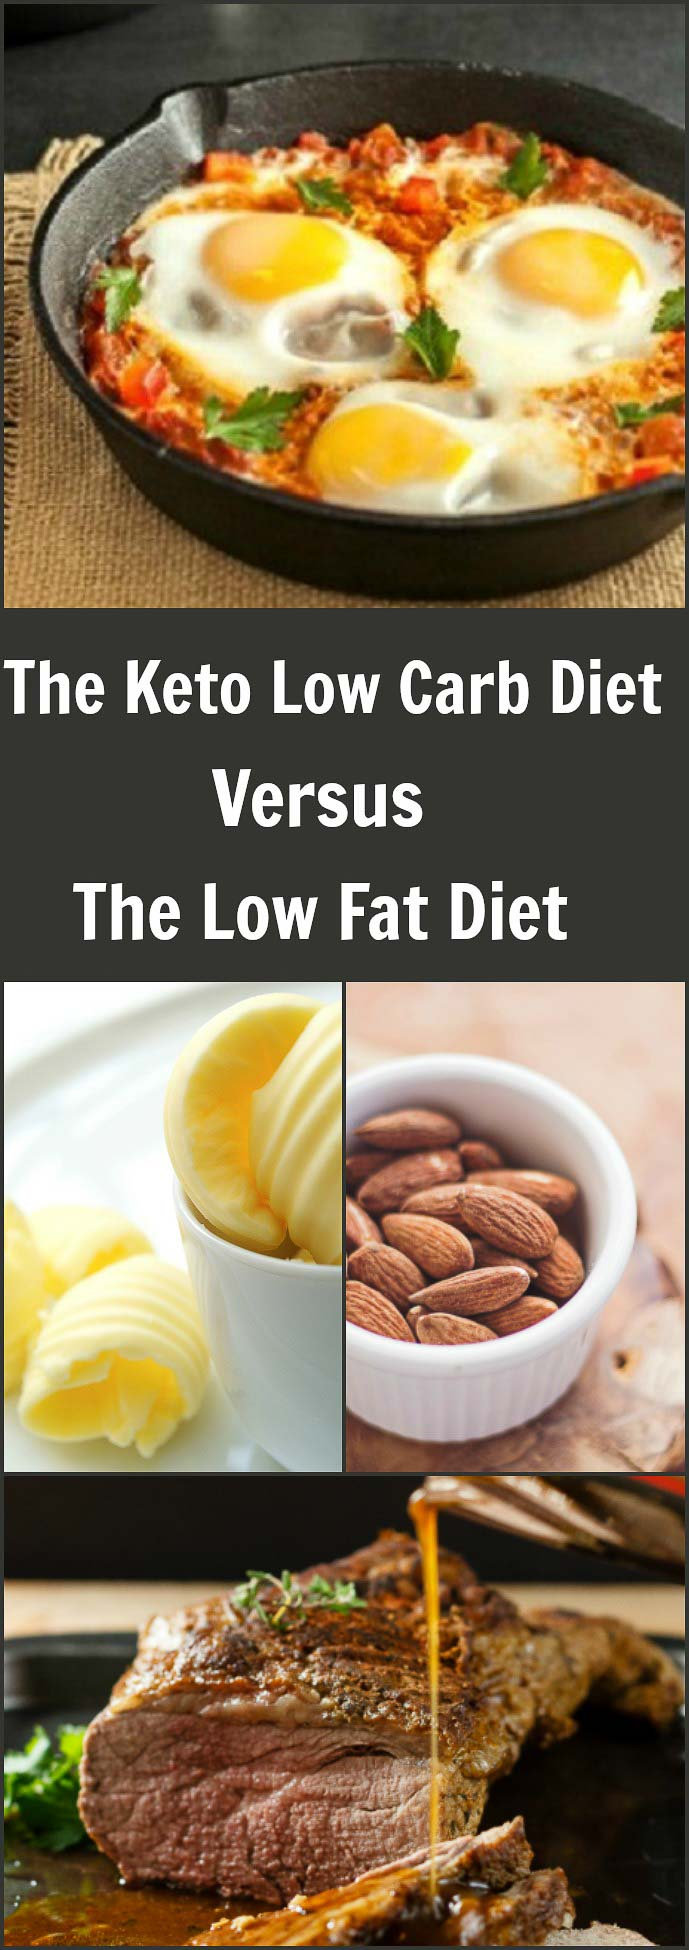 Ketogenic Low Carb Diet Versus Low Fat Diet plans